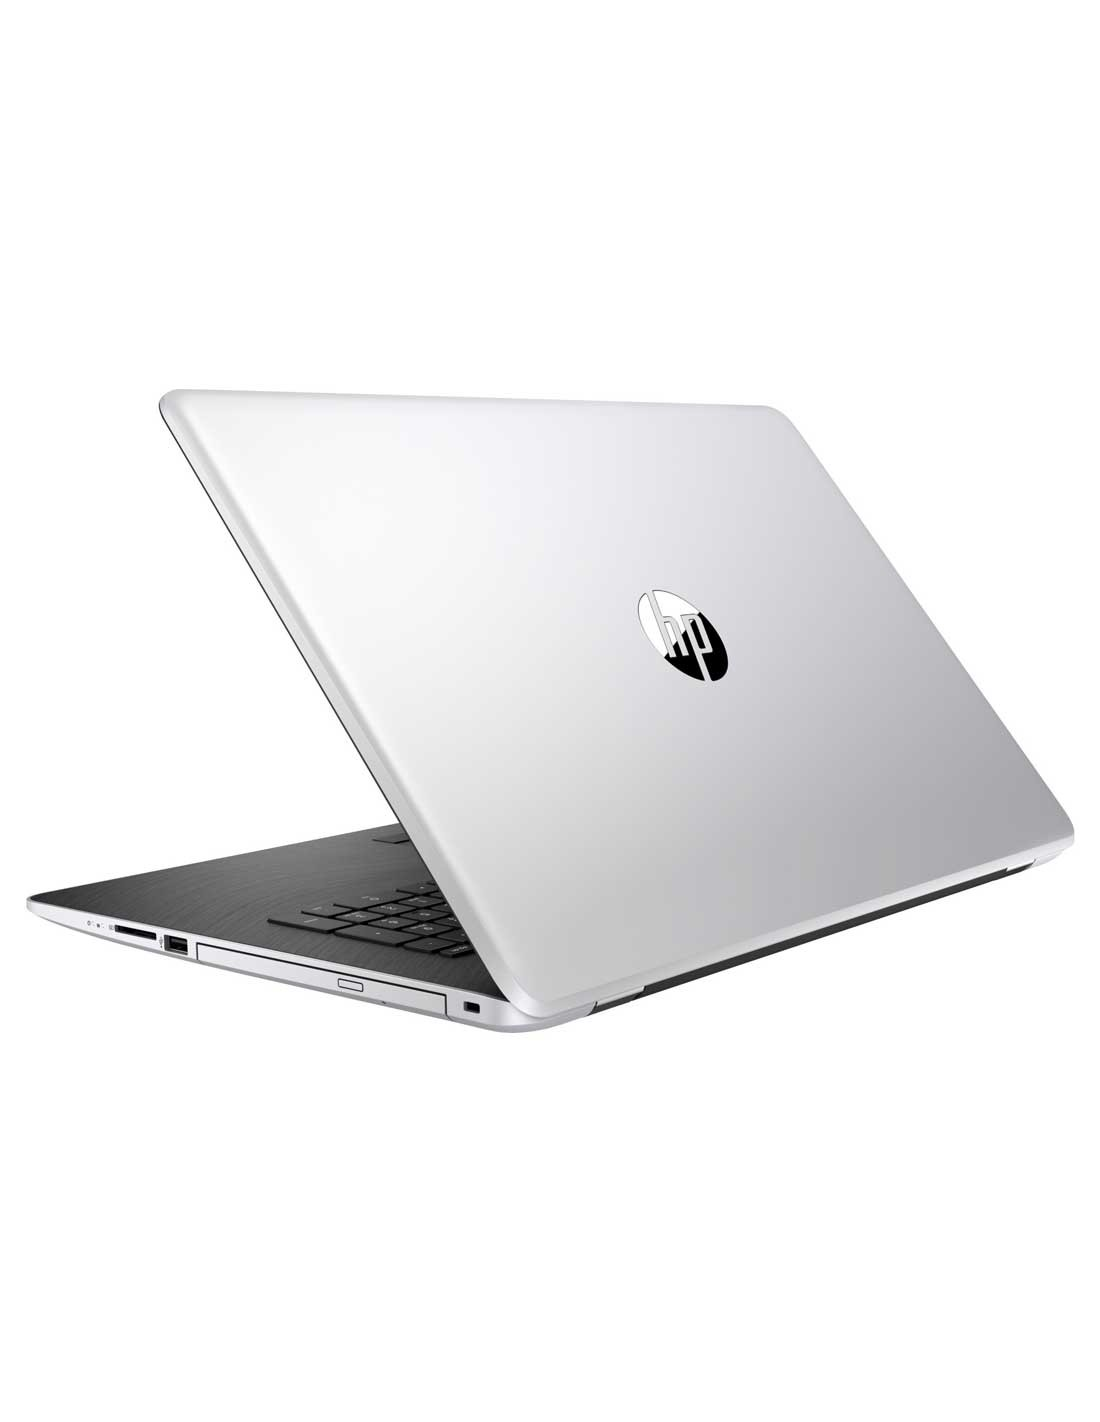 HP Notebook 15-bs123ne images and photos